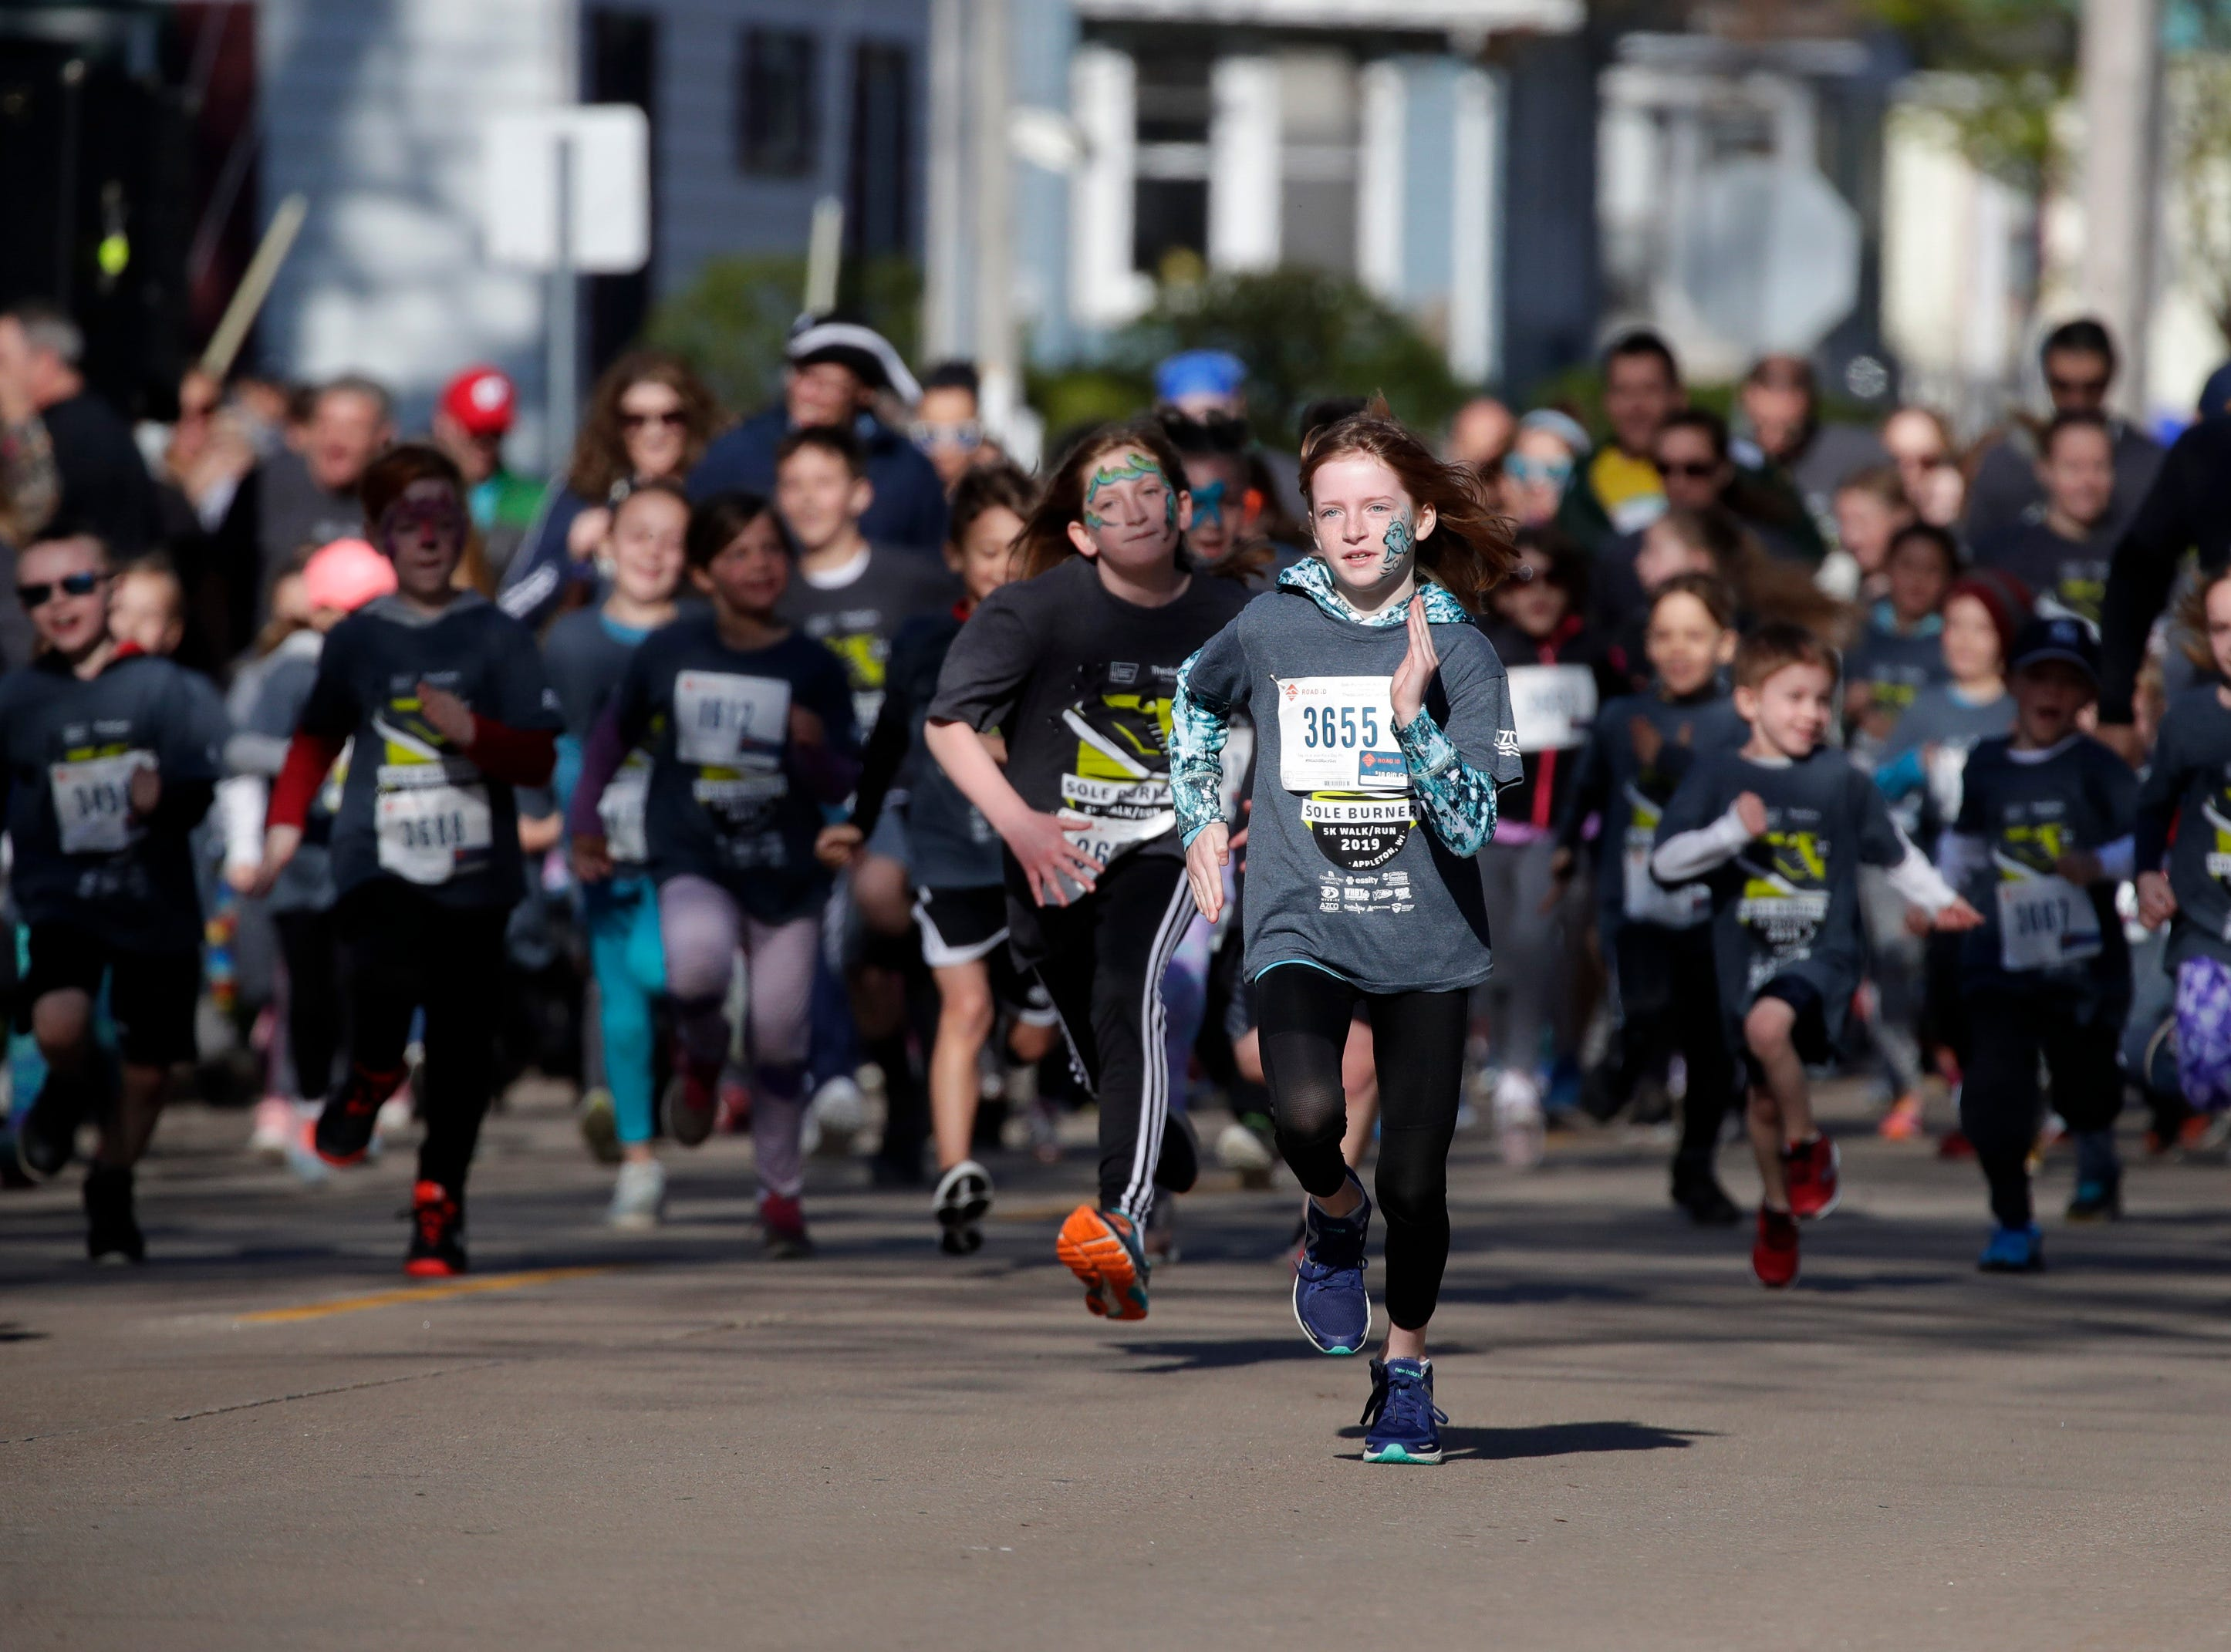 Racers in the children's fun run take off from the starting line during the Sole Burner 5K Walk-Run Saturday, May 11, 2019, in Appleton, Wis. 